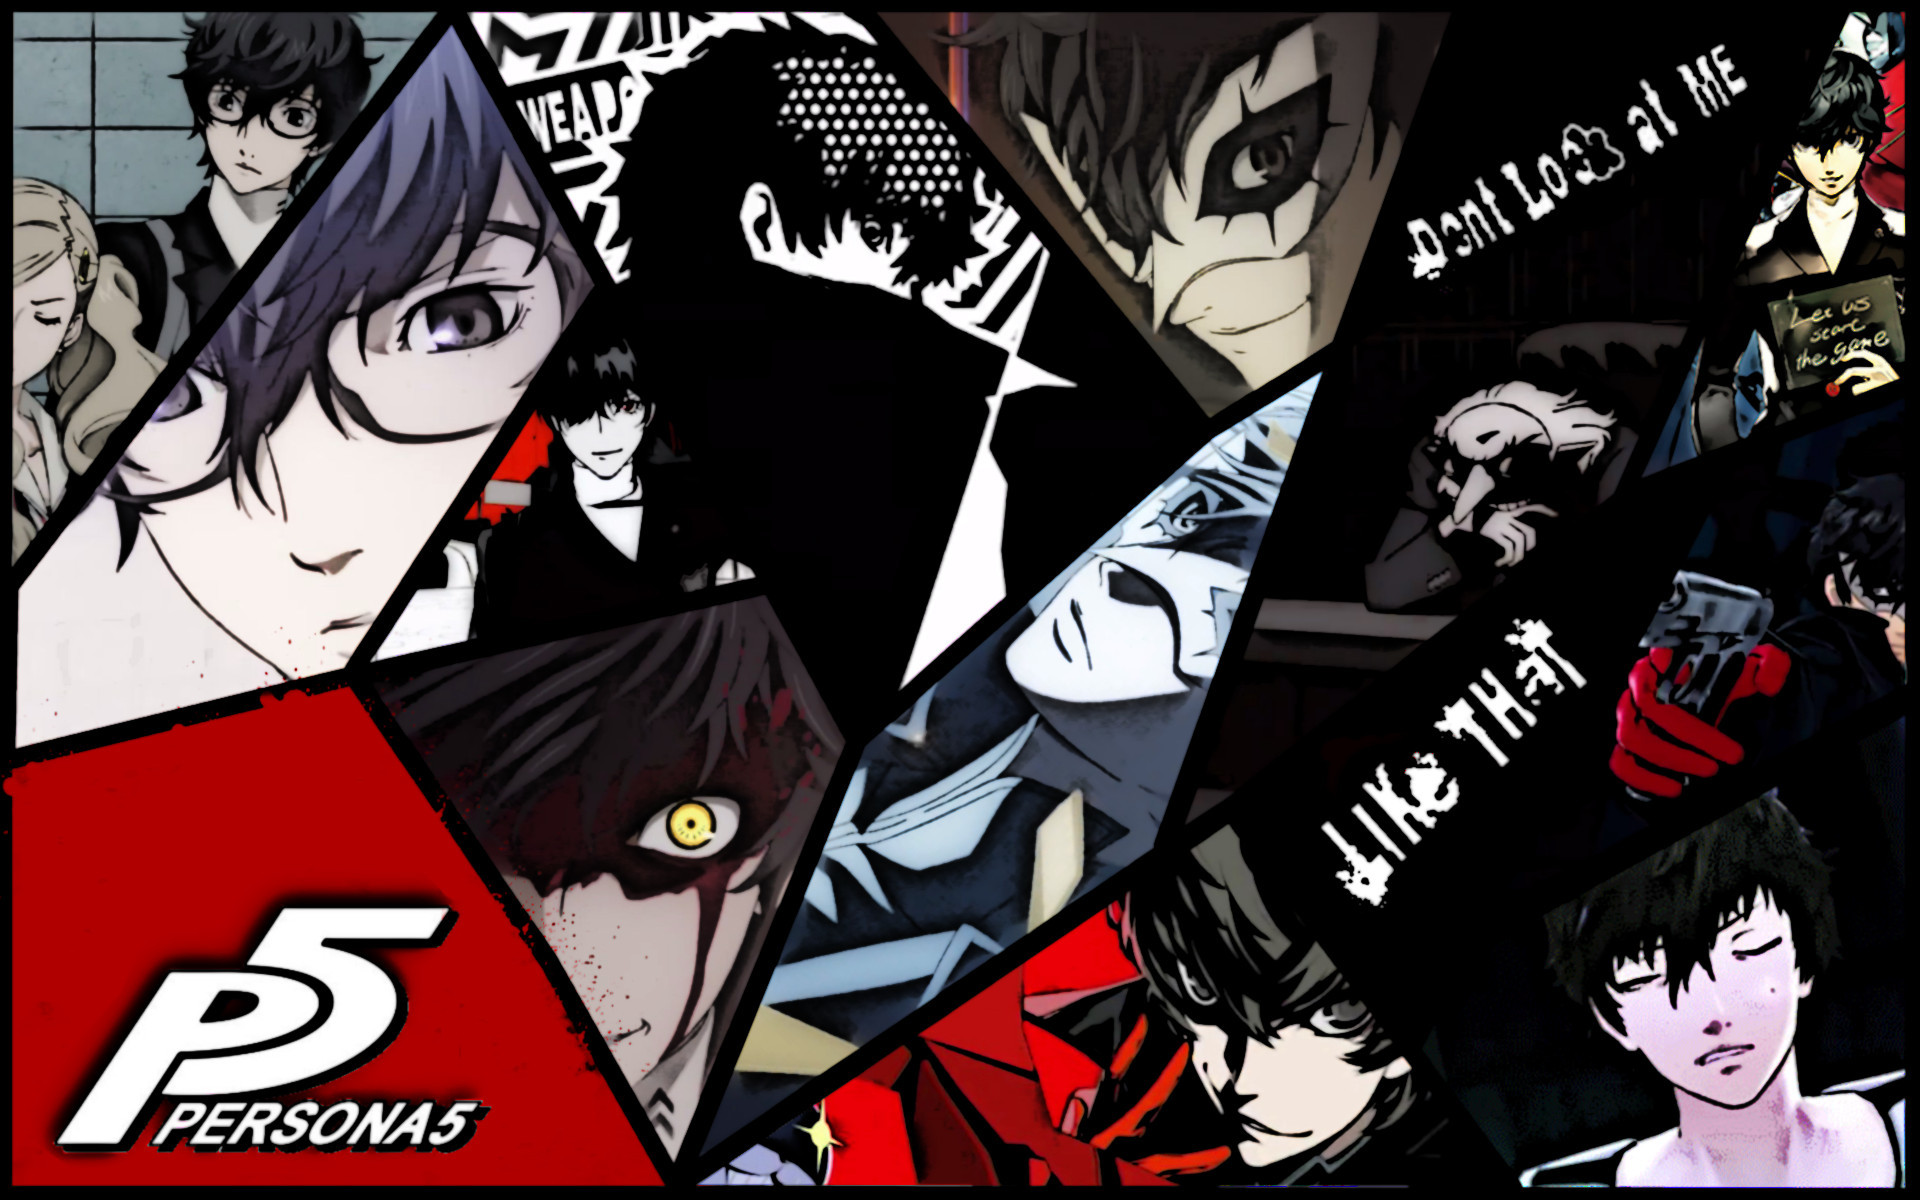 Persona 5 Wallpapers (34 Wallpapers)